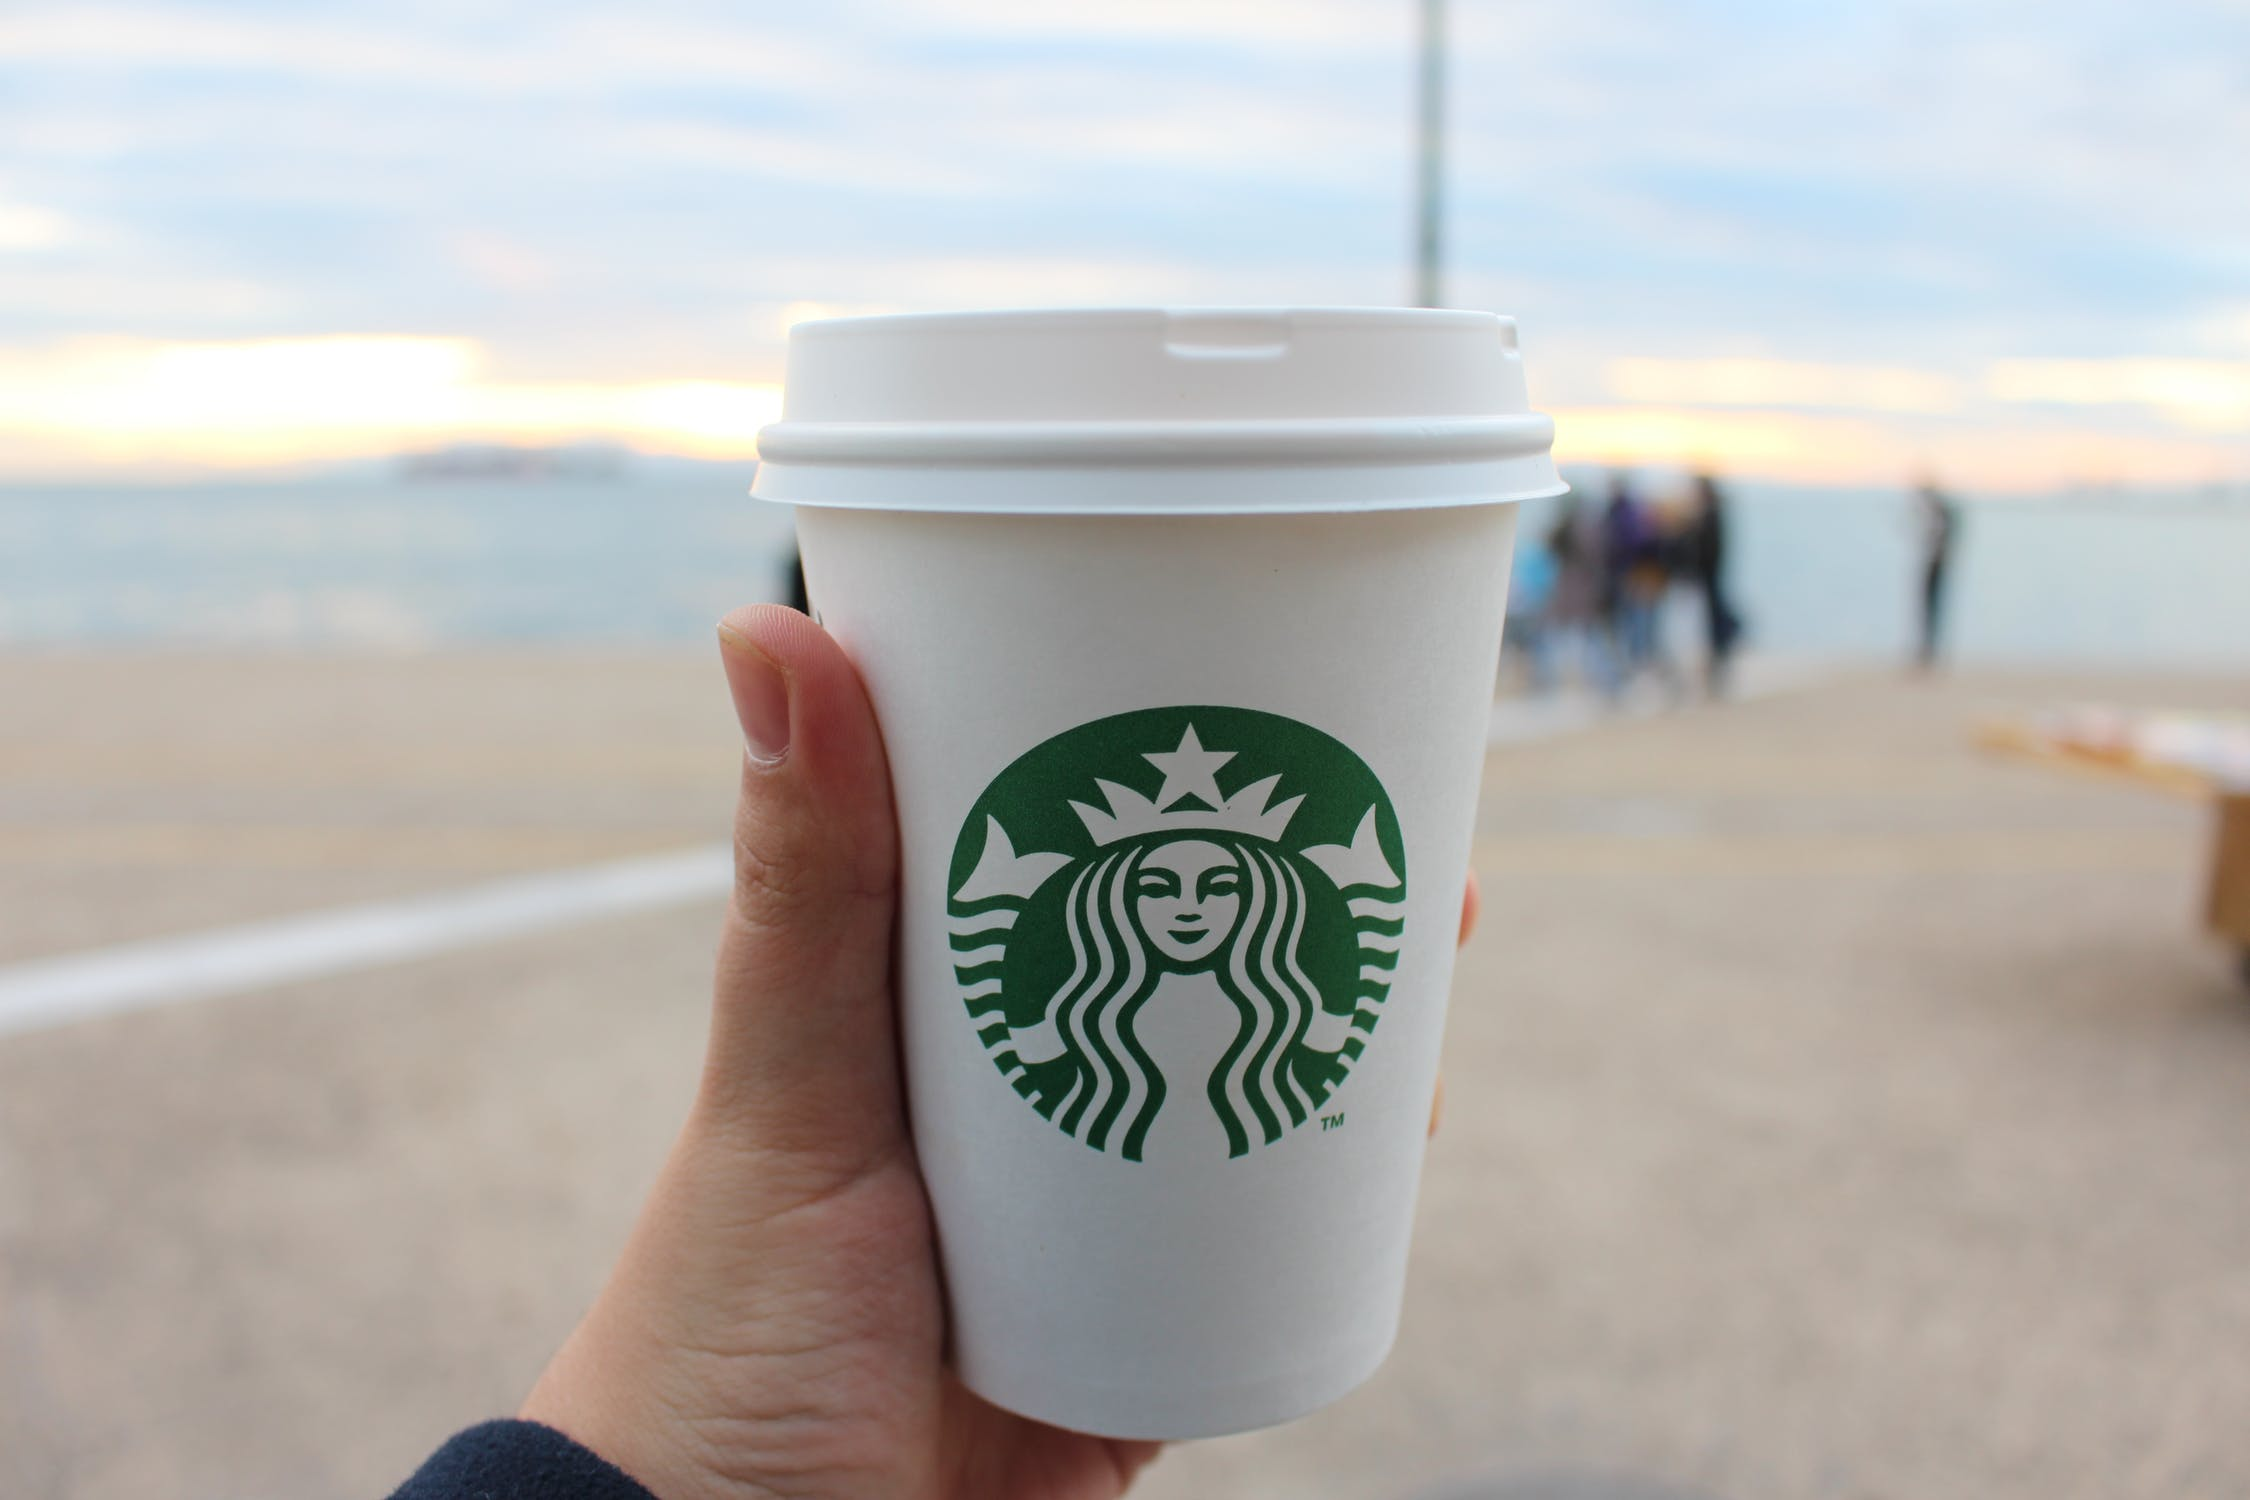 One Cool Thing: A Big Week for Corporate Sustainability as Starbucks, Taco Bell Step Up